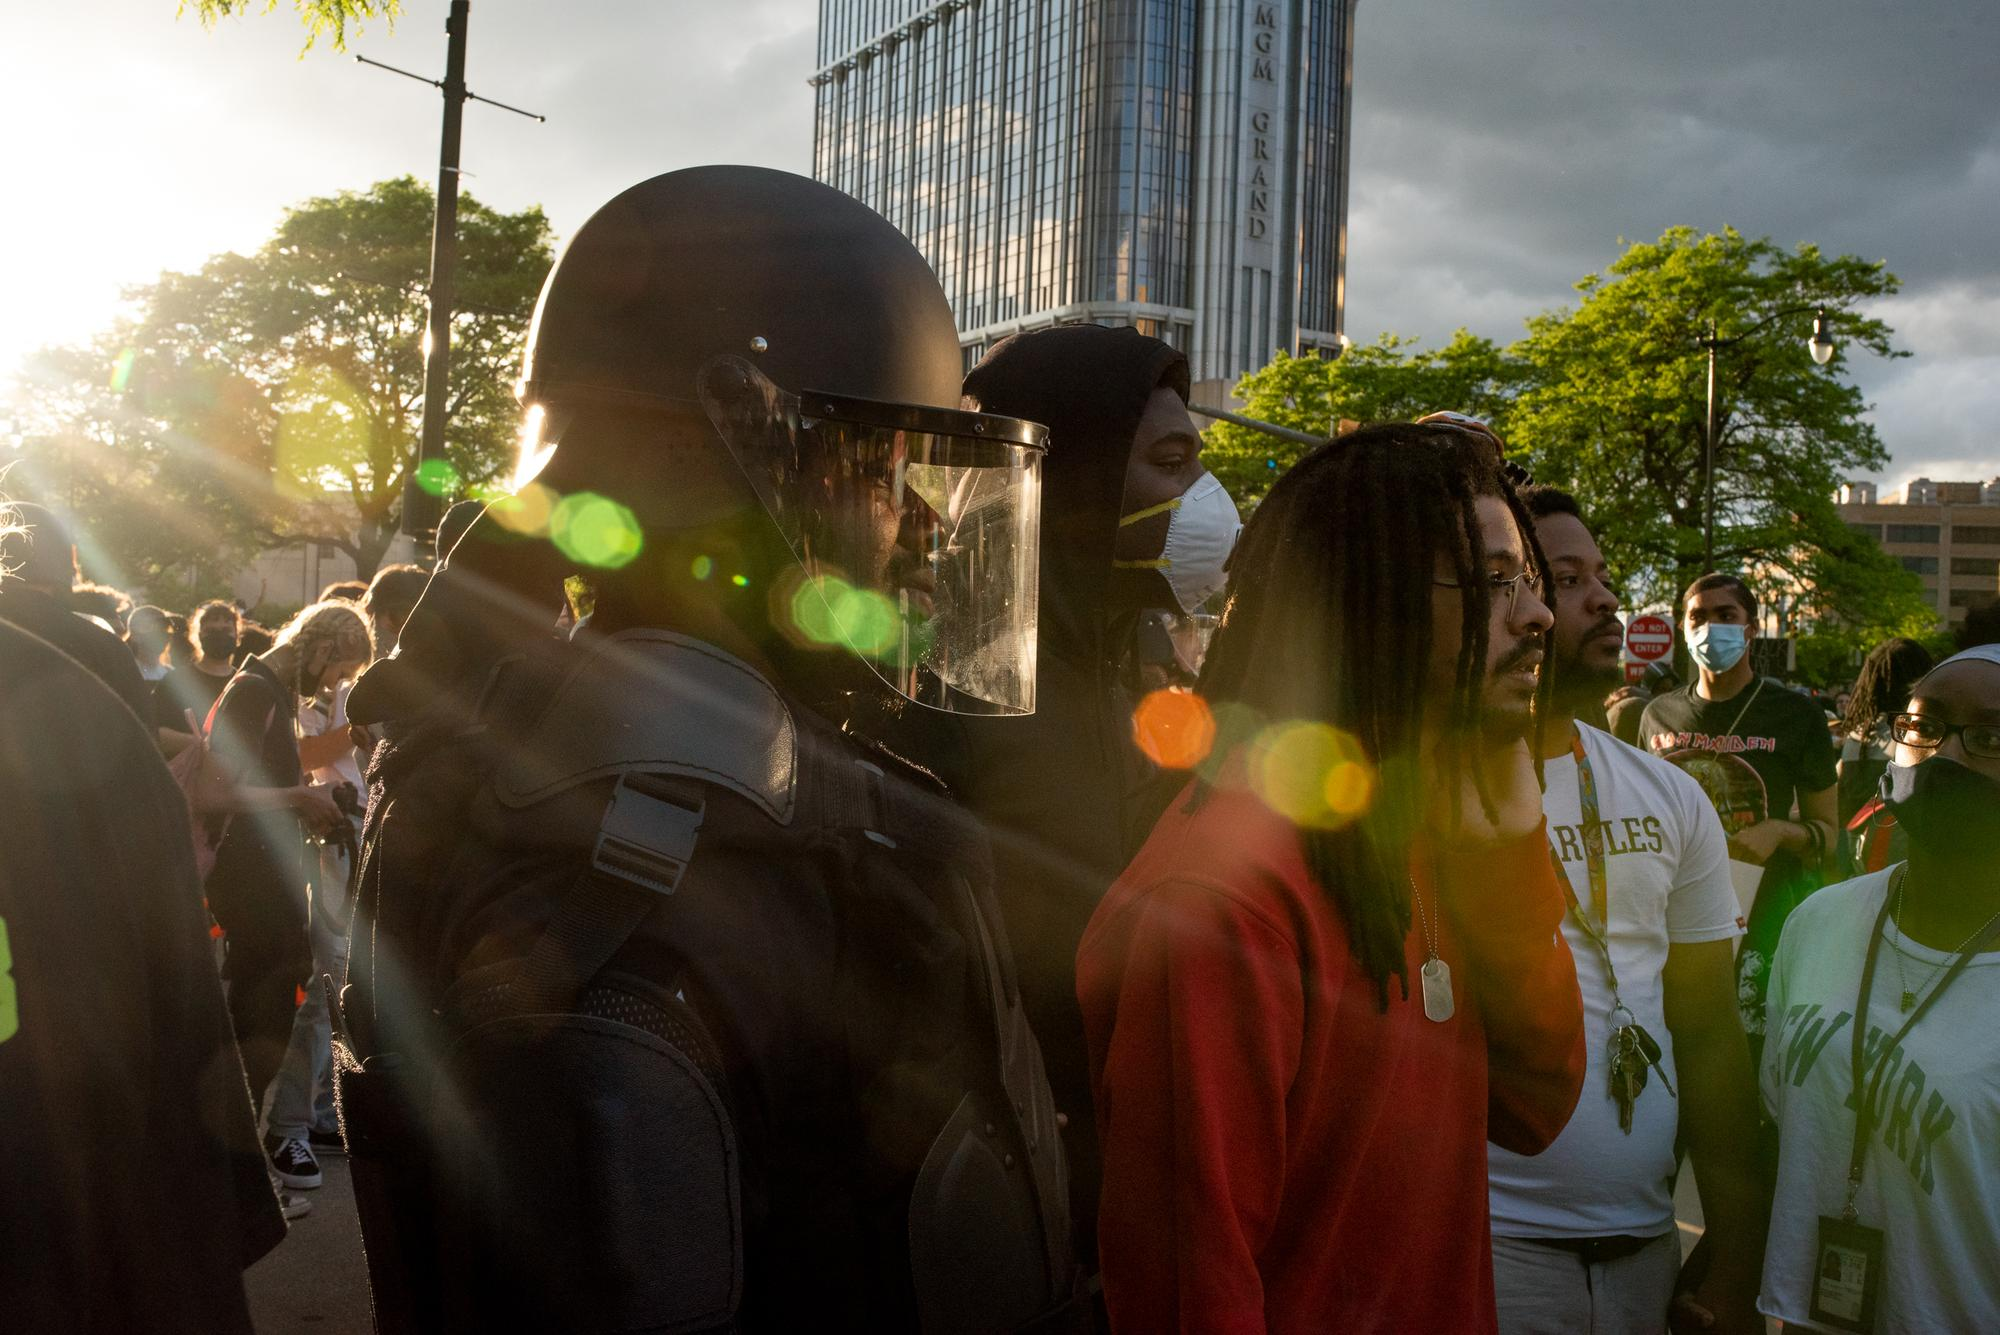 The second day of protesting began and ended at DPD headquarters in Downtown Detroit. Upon arrival, protesters were met with several police officers standing across Michigan Ave. in their riot gear.Taken by Rachel Elise Thomas for WDET